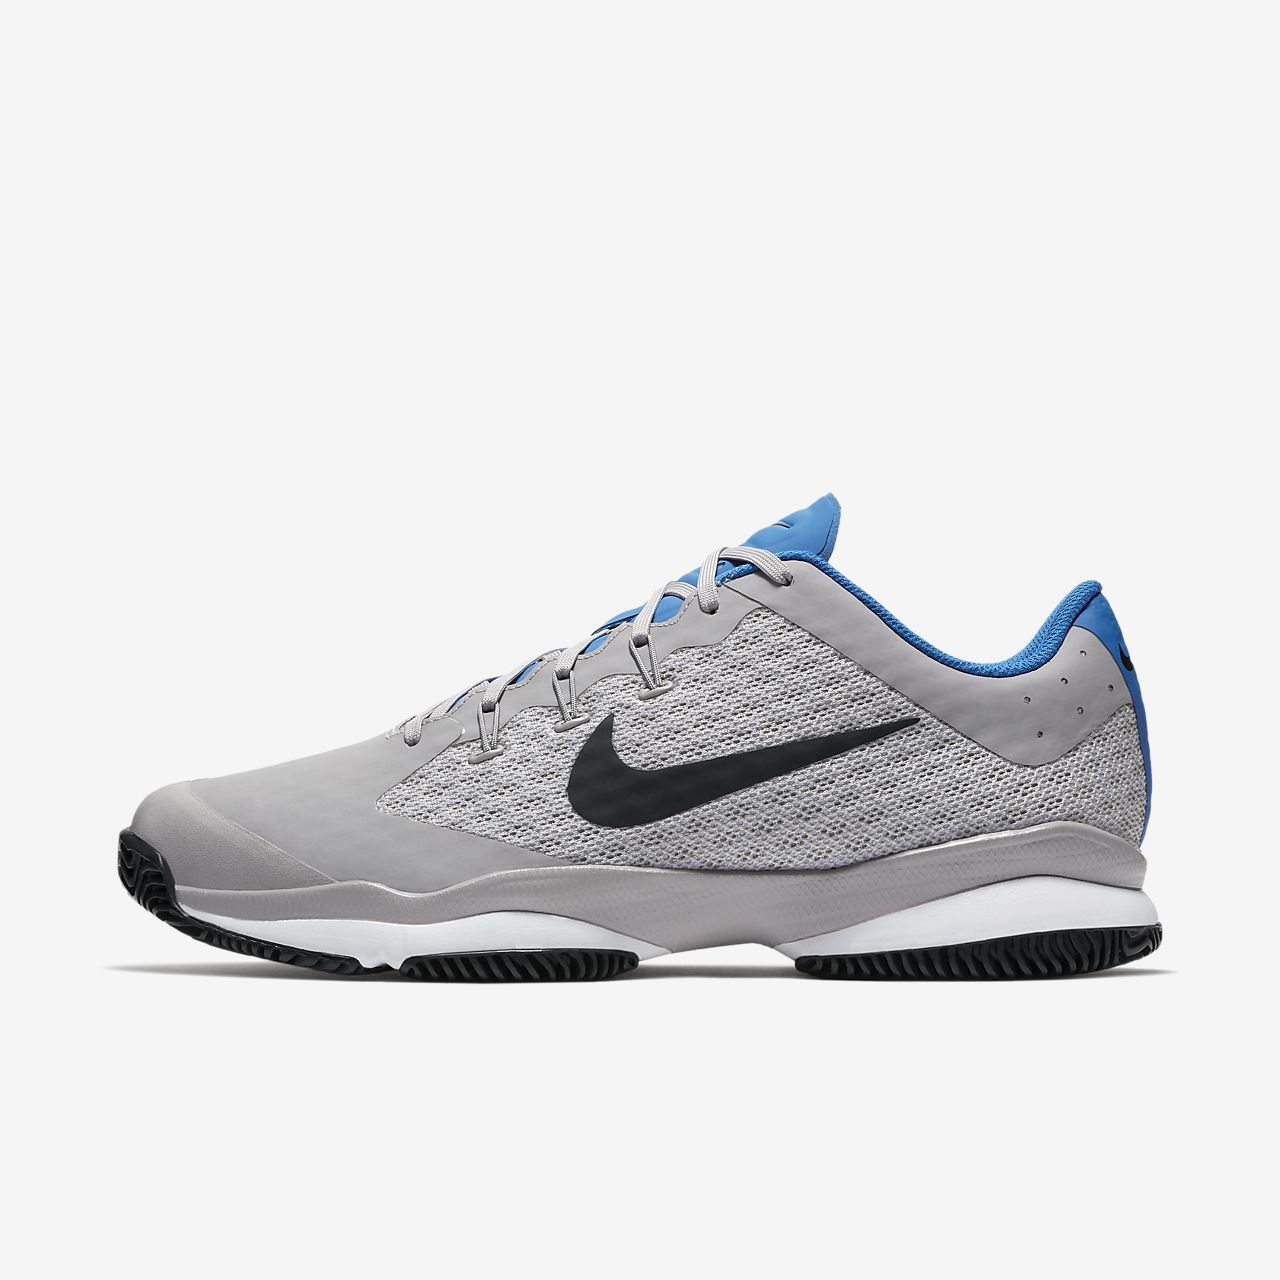 ... NikeCourt Air Zoom Ultra HC Men's Tennis Shoe